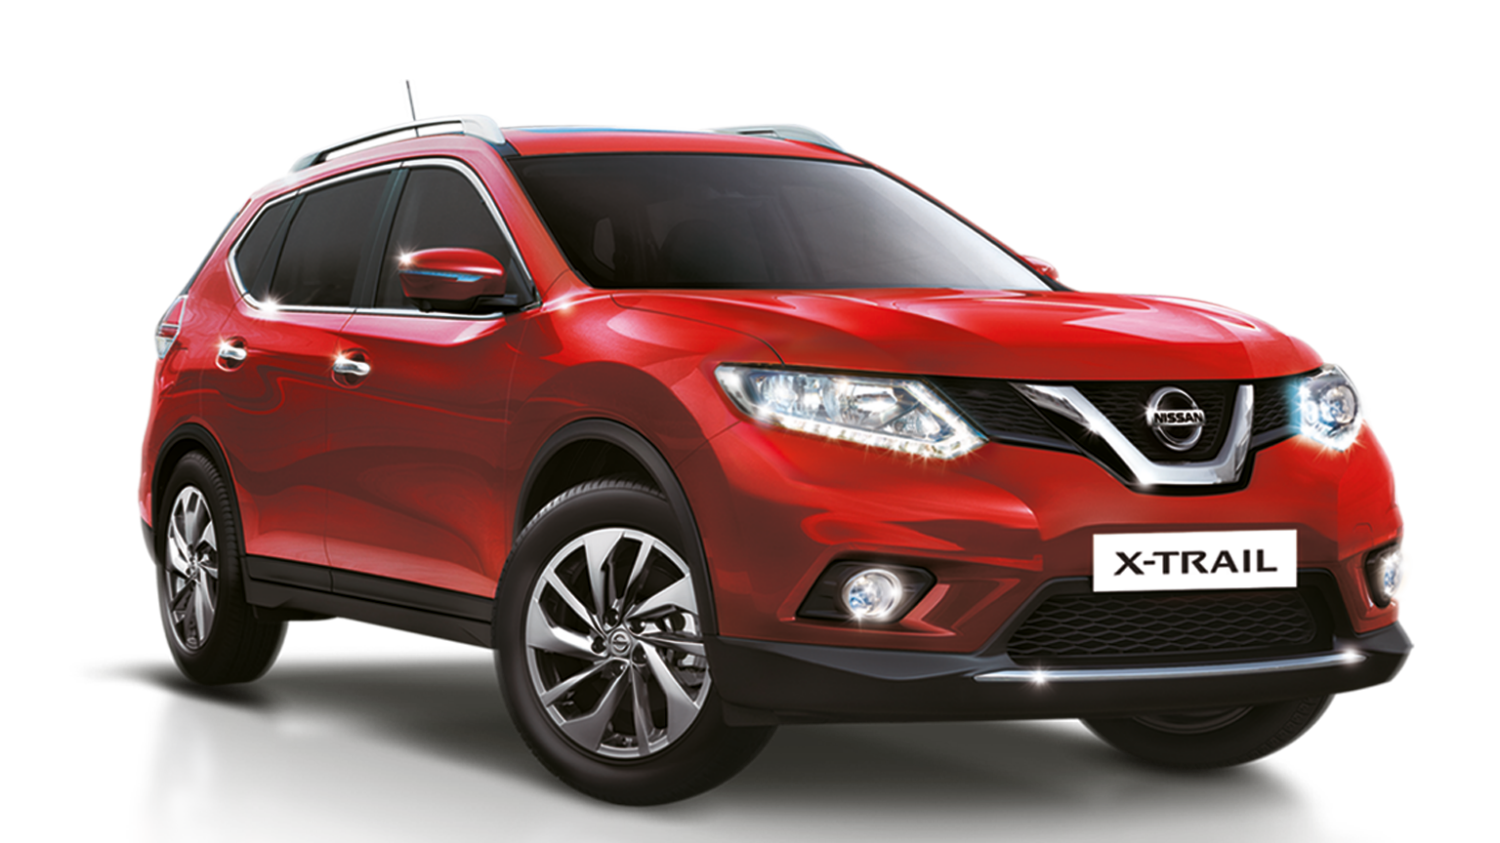 X-Trail versatile 7-seater crossover